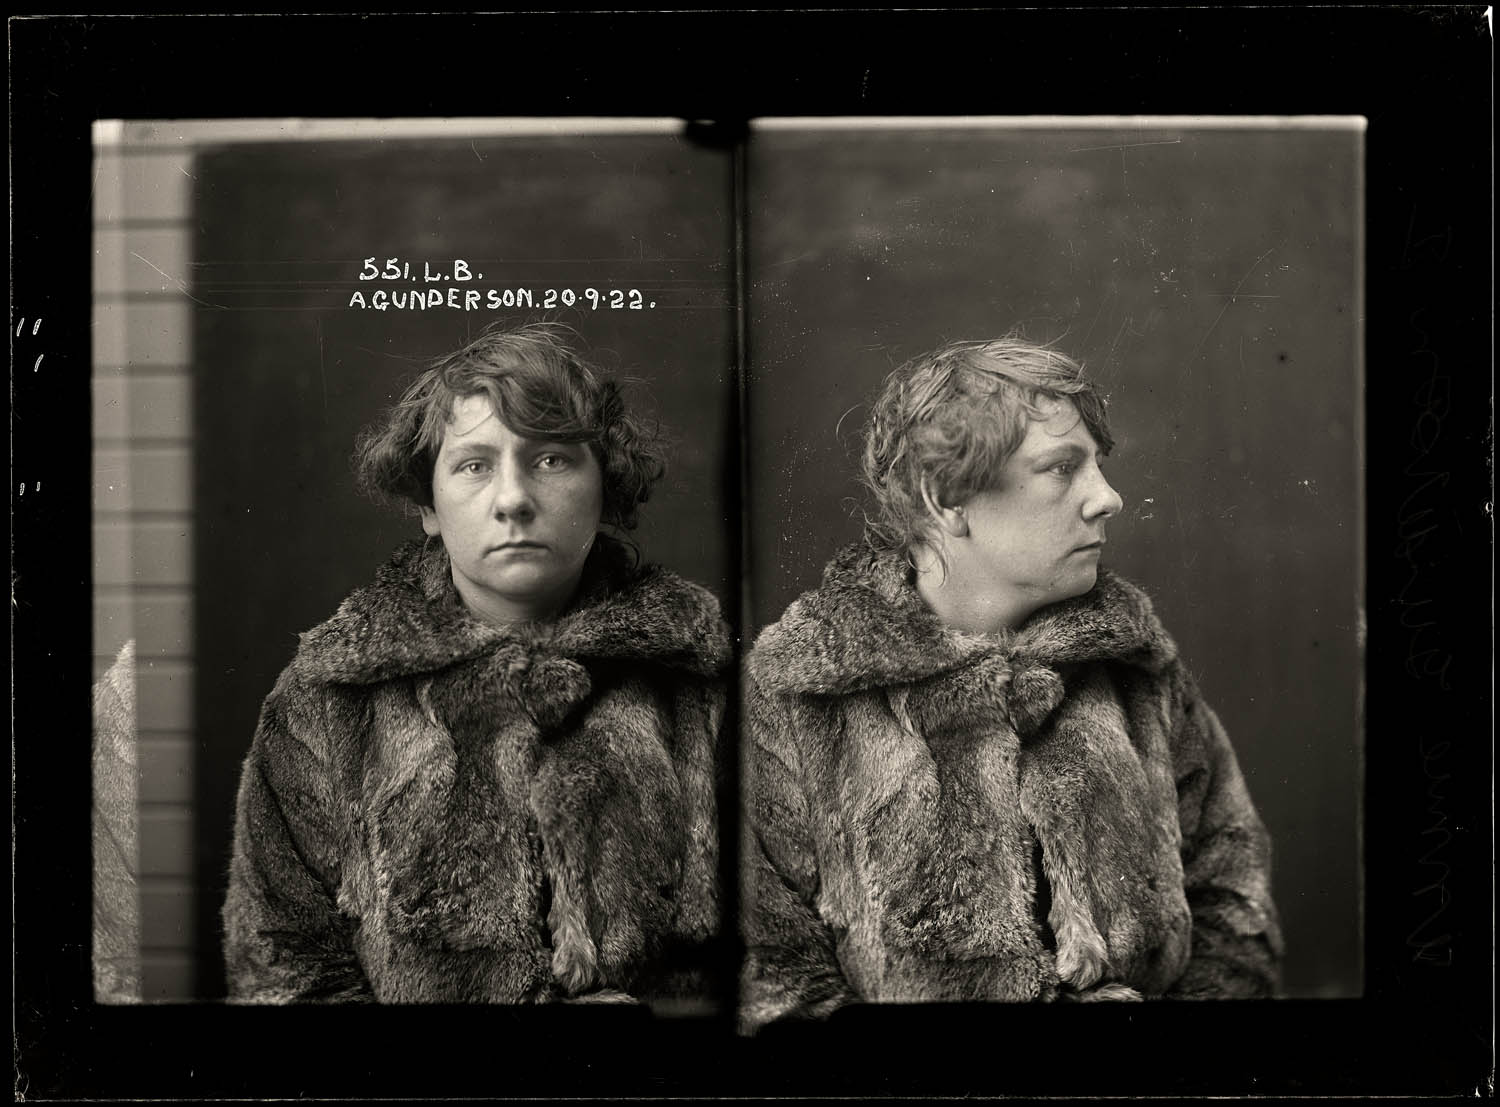 Annie Gunderson, criminal record number 551LB, 20 September 1922. State Reformatory for Women, Long Bay, NSW